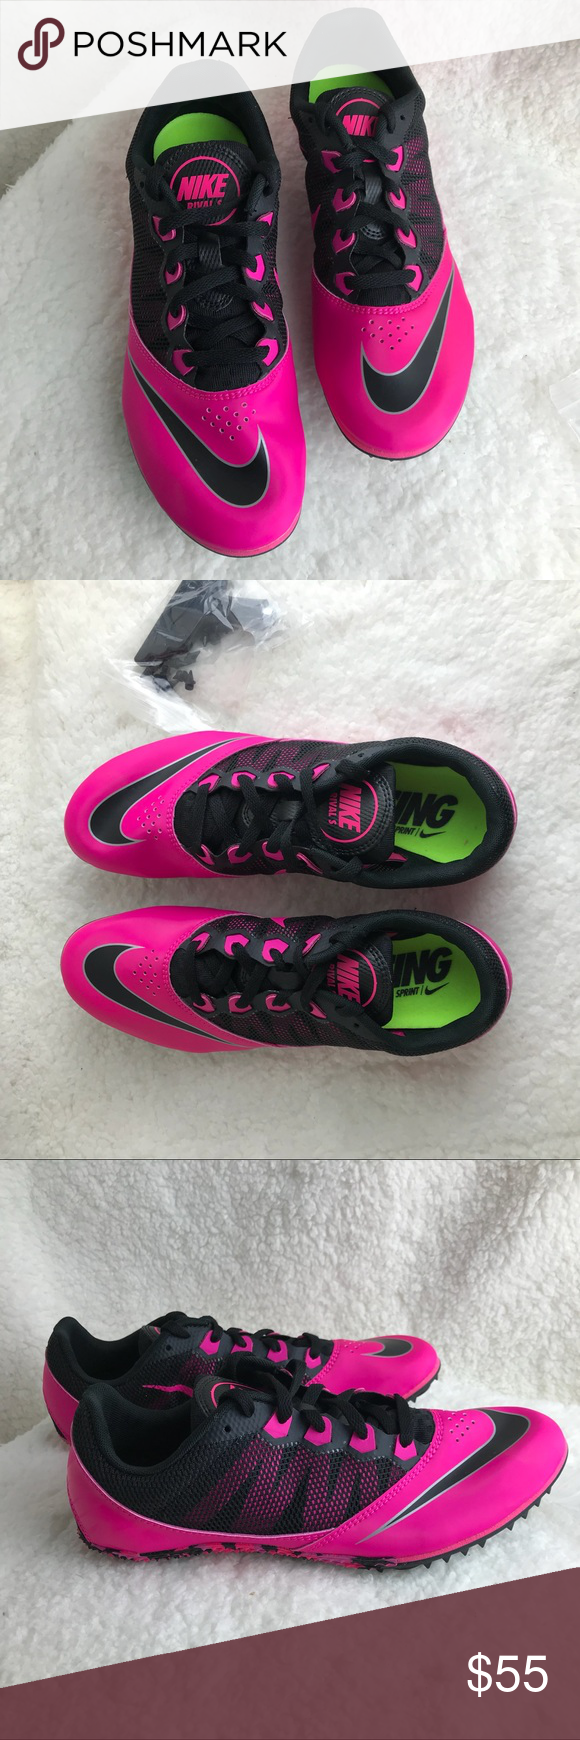 134015e73 Neon hot pink new track shoes women 8 1 2 New without box neon hot pink  with spikes and tool track running shoes. Pet free smoke free home.